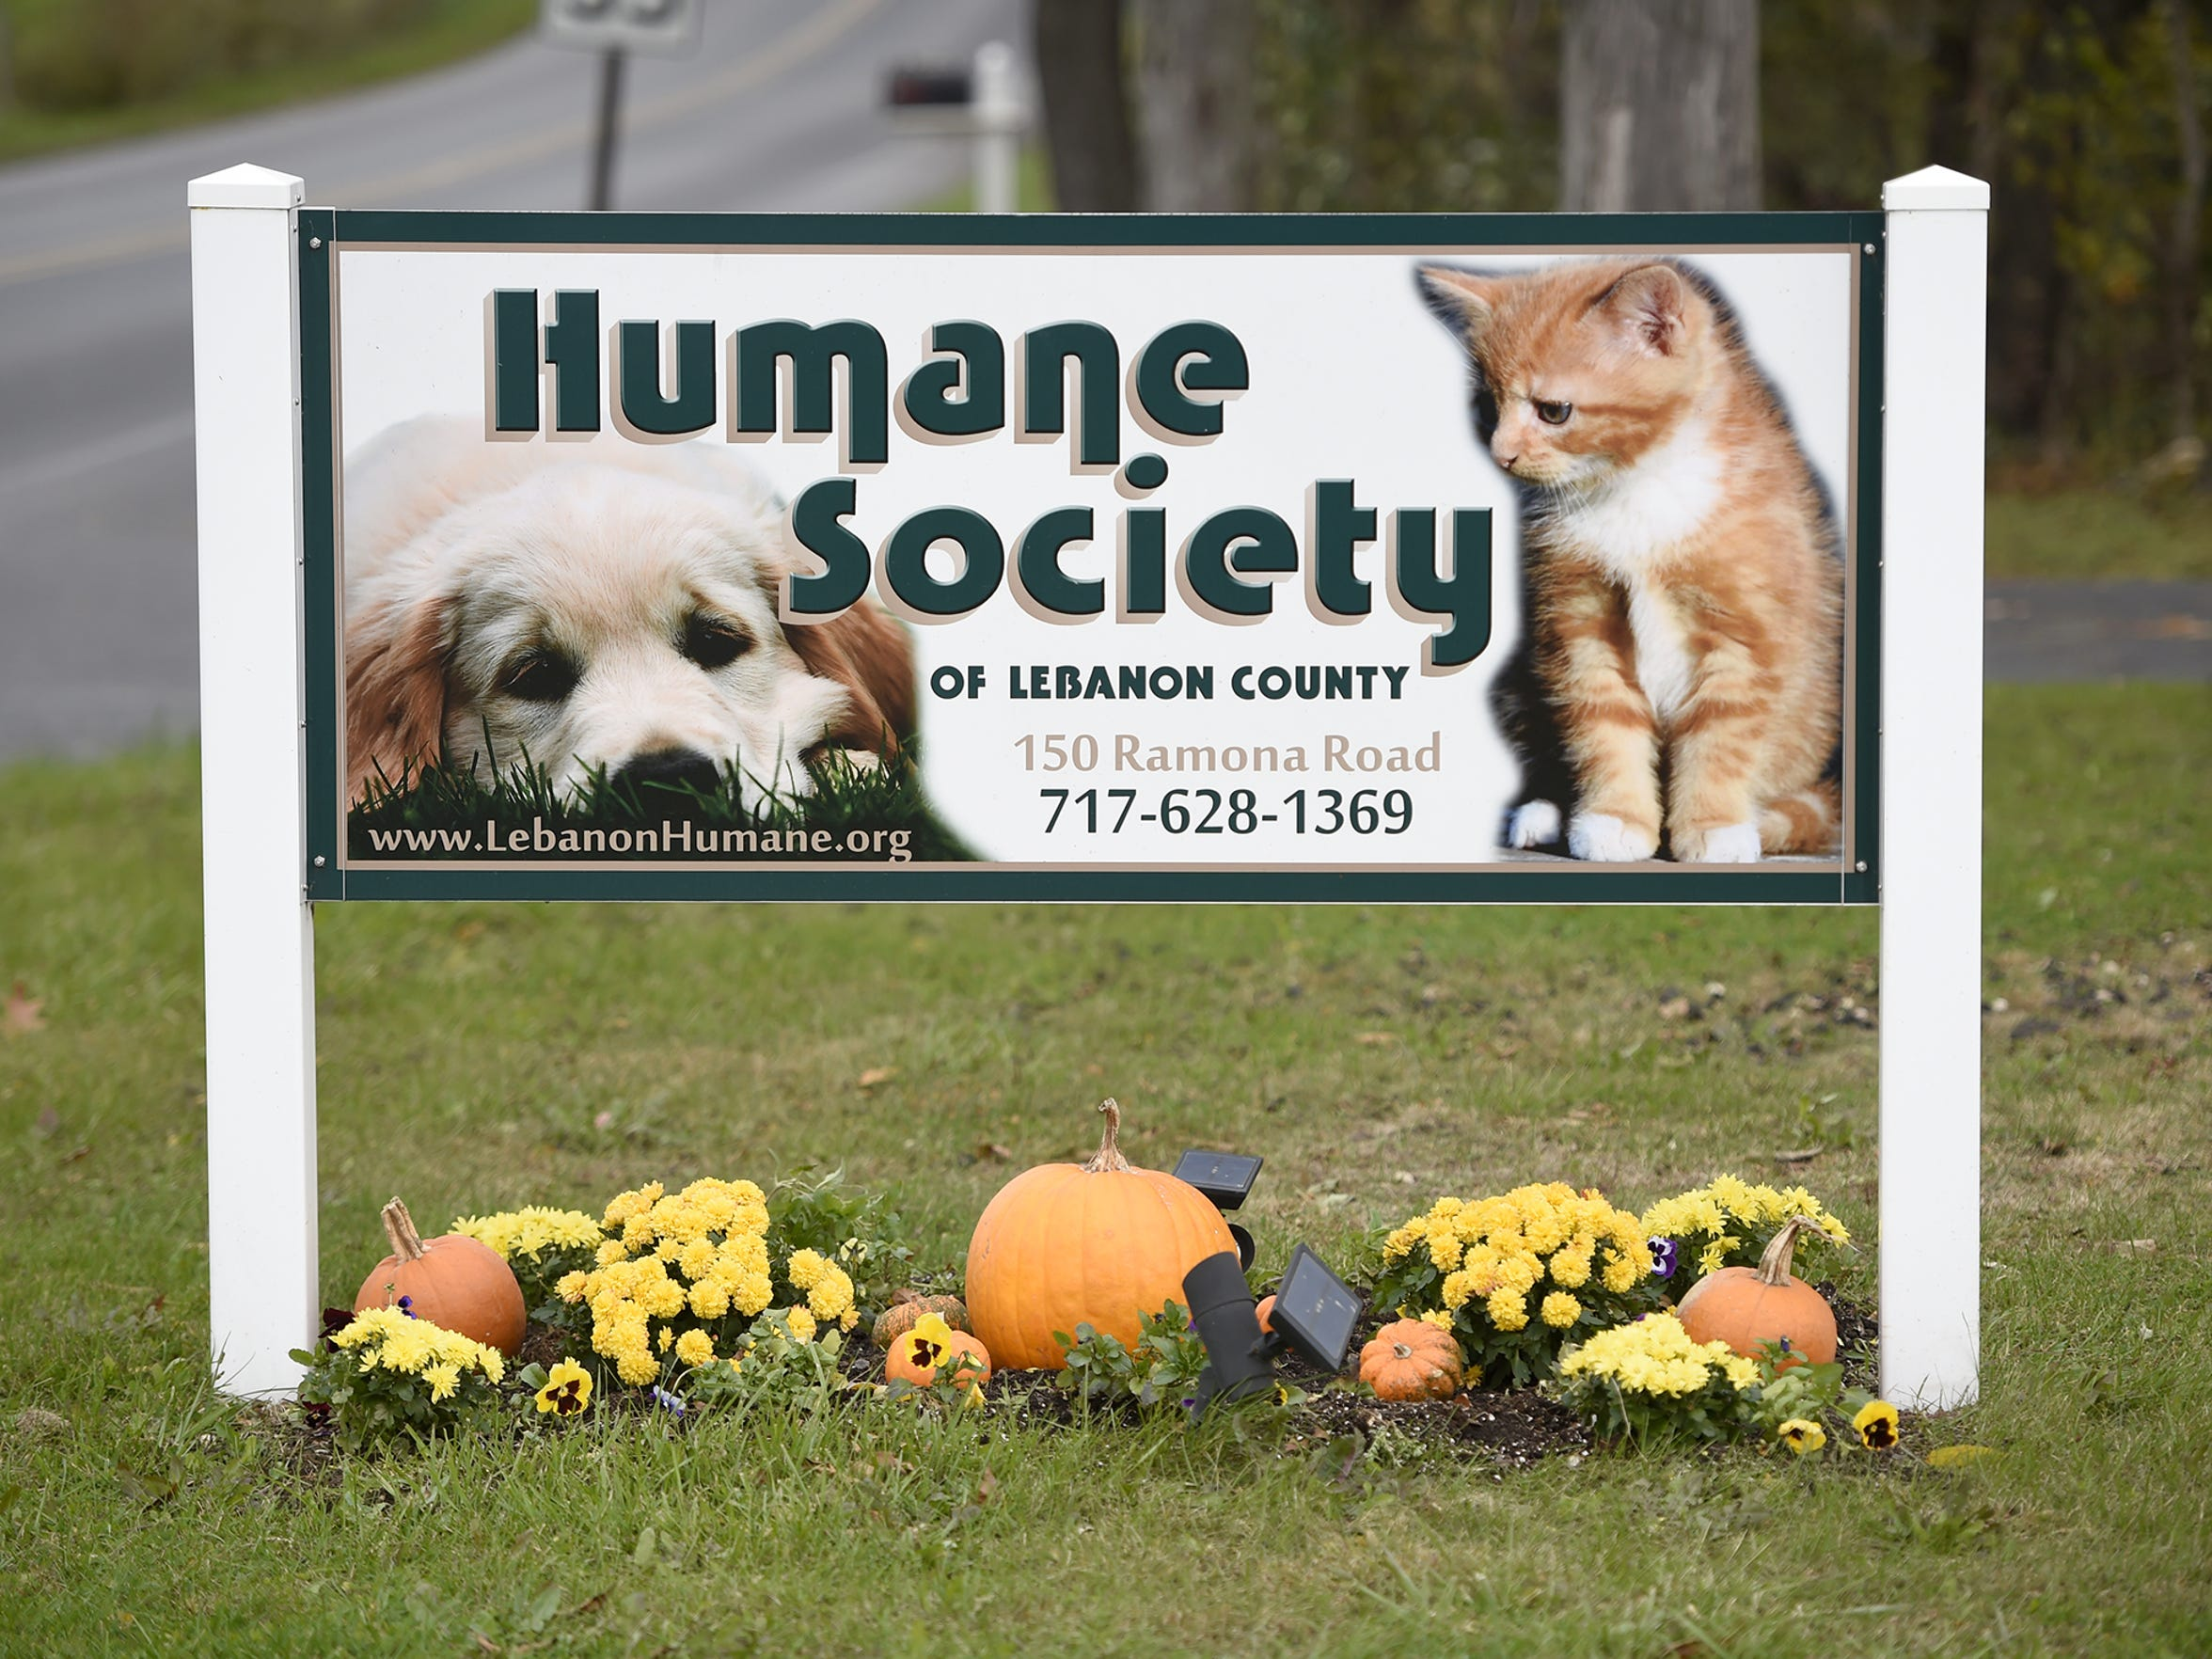 Humane Society of Lebanon County